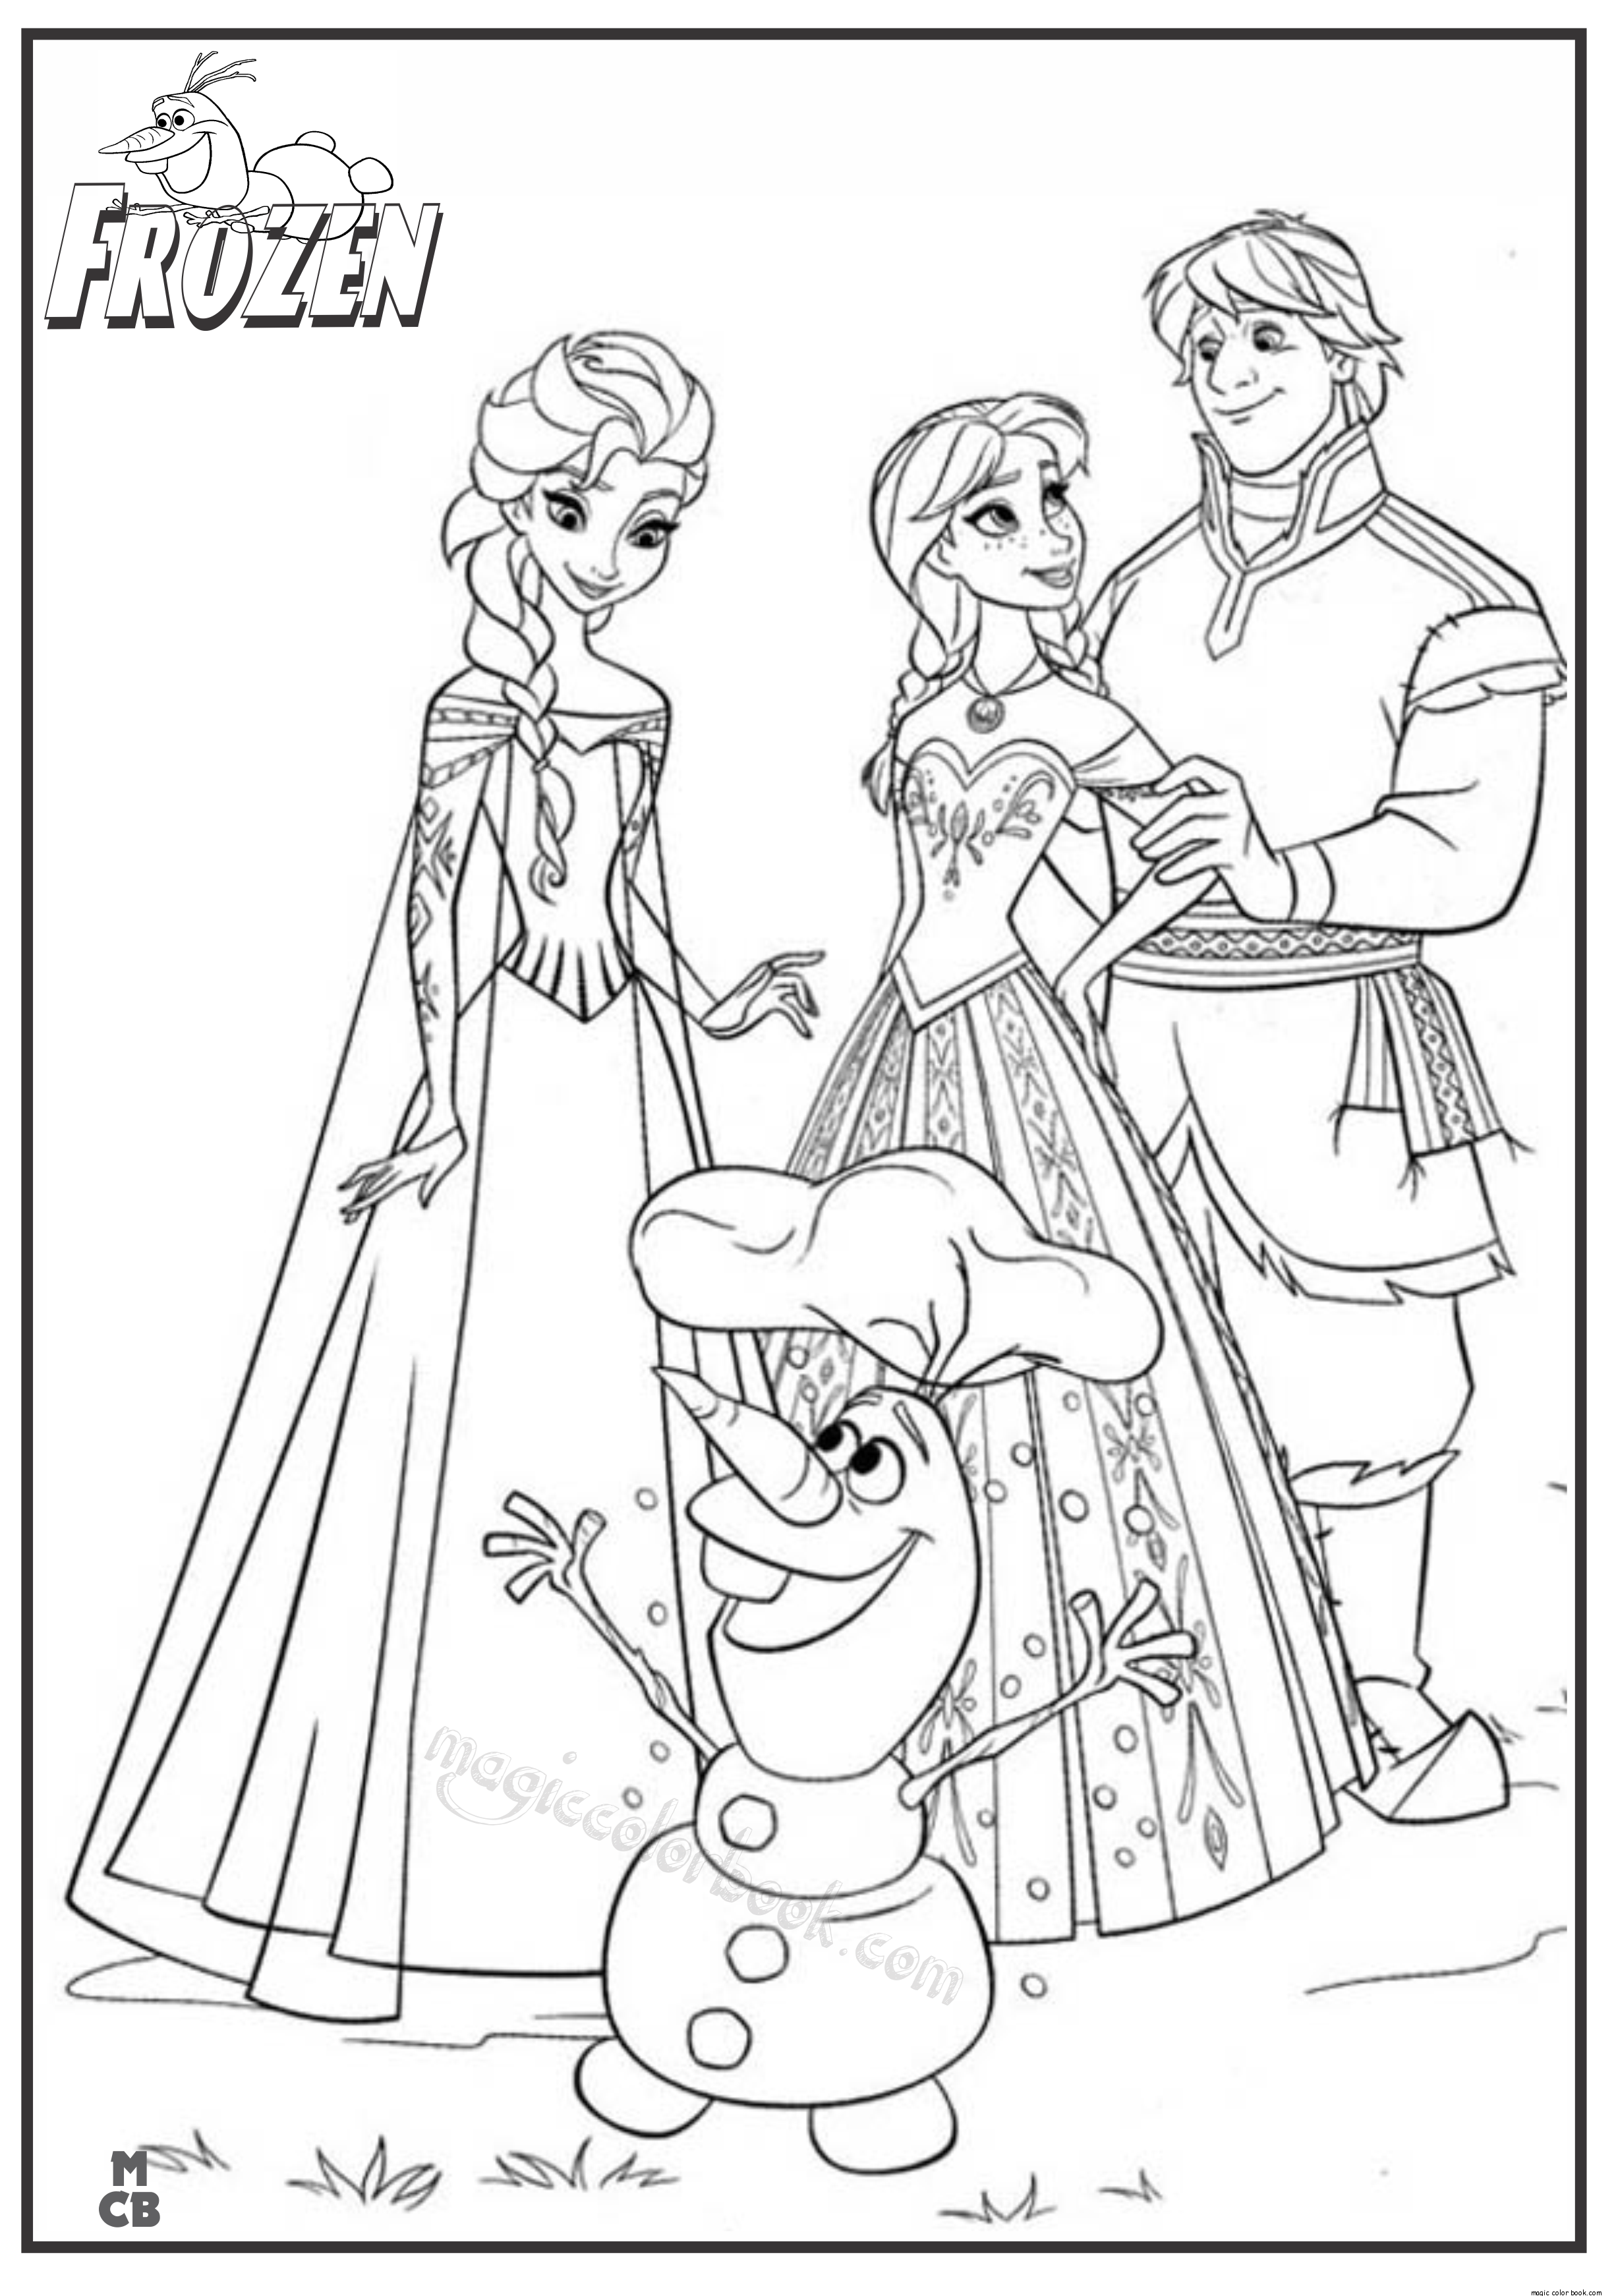 Free Frozen Coloring Pages At Getdrawings Com Free For Personal